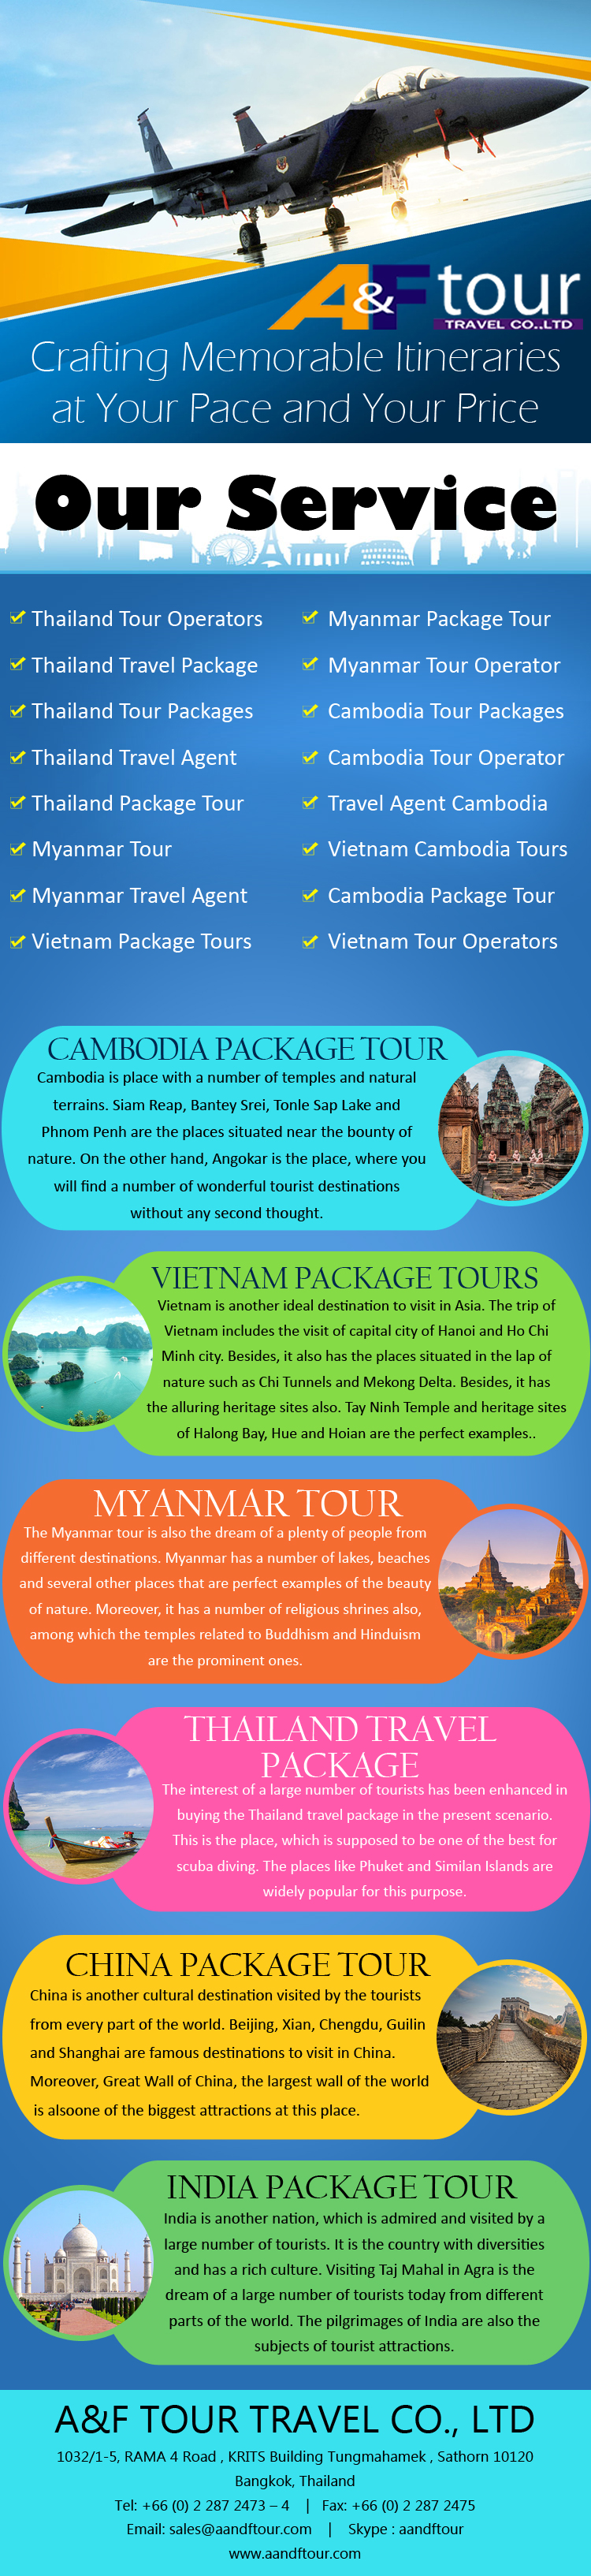 AF Is A Tour And Travel Agency In Bangkok Offering Affordable - Vacation tour and travel